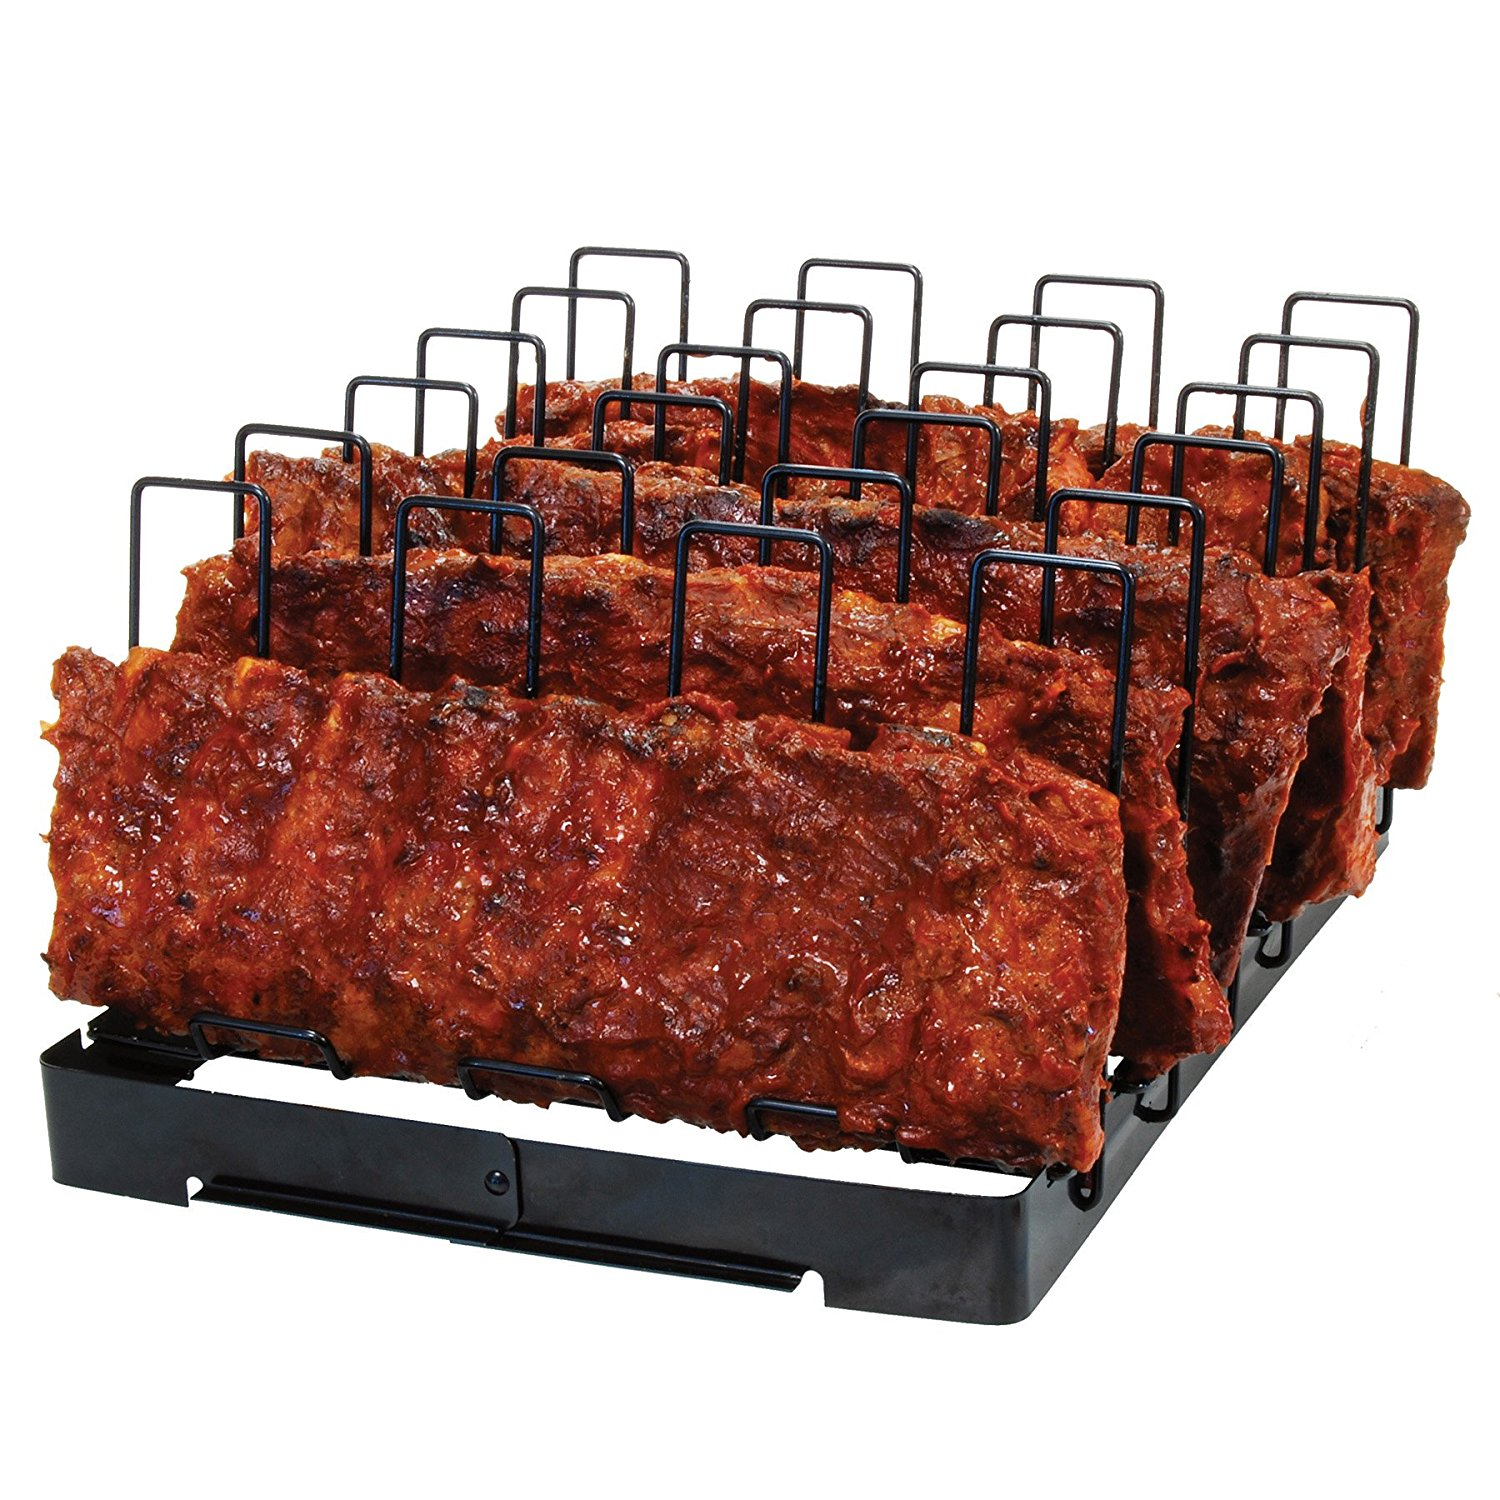 how to cook ribs on a gas grill and oven